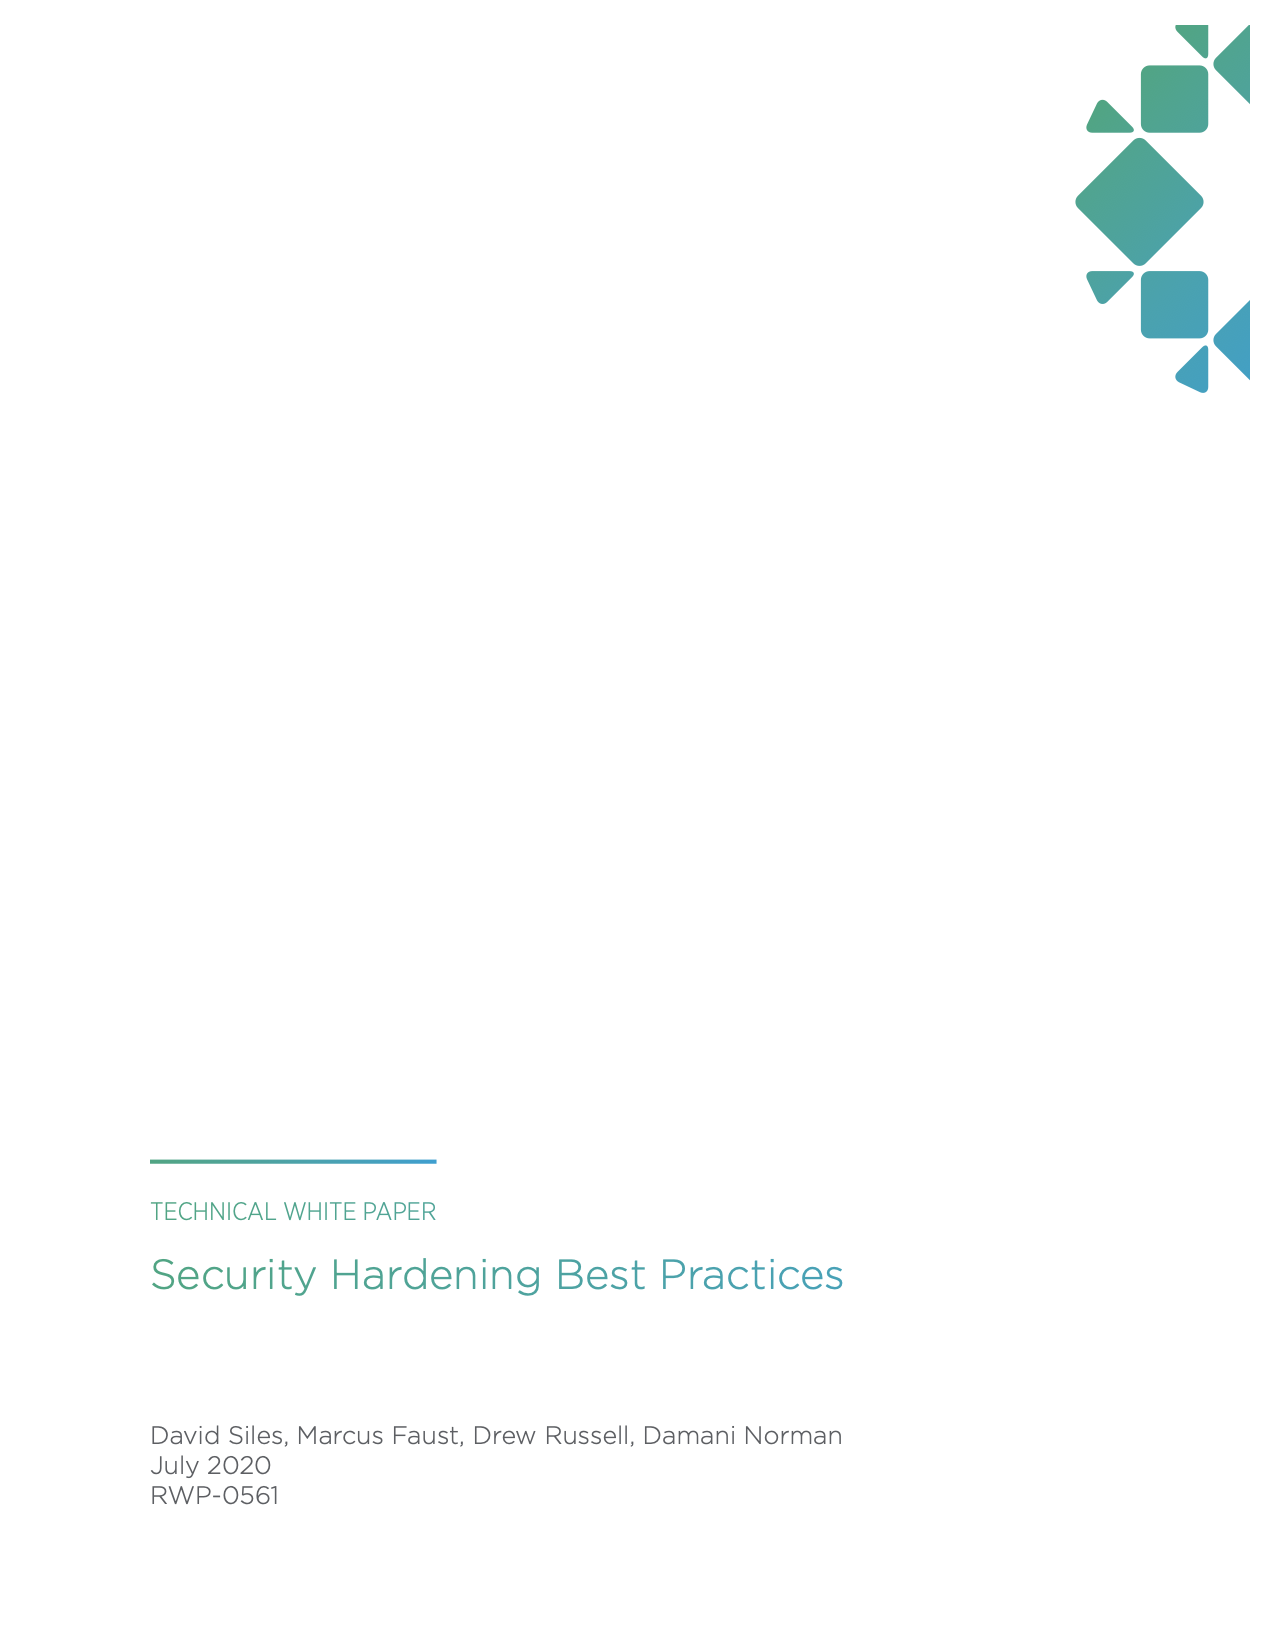 Security Hardening Best Practices